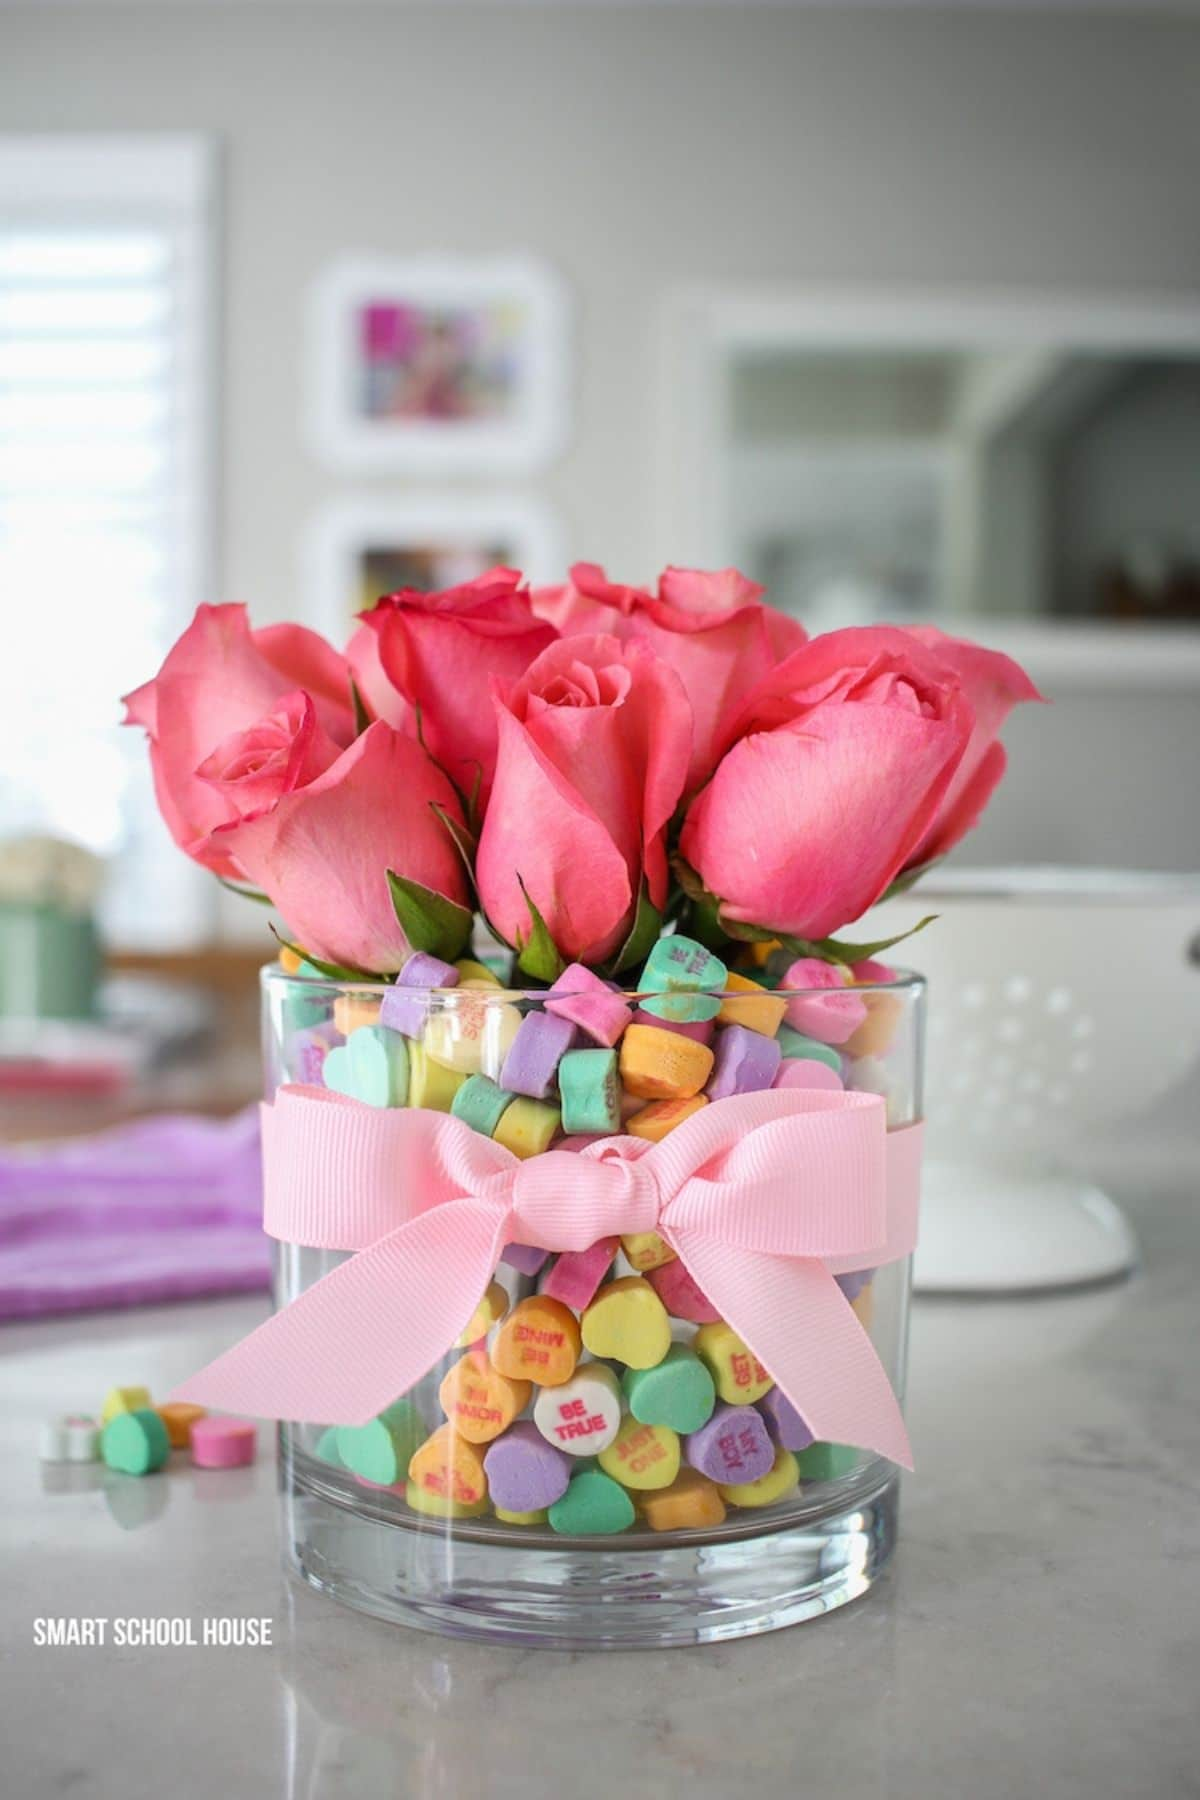 Roses in vase with candy